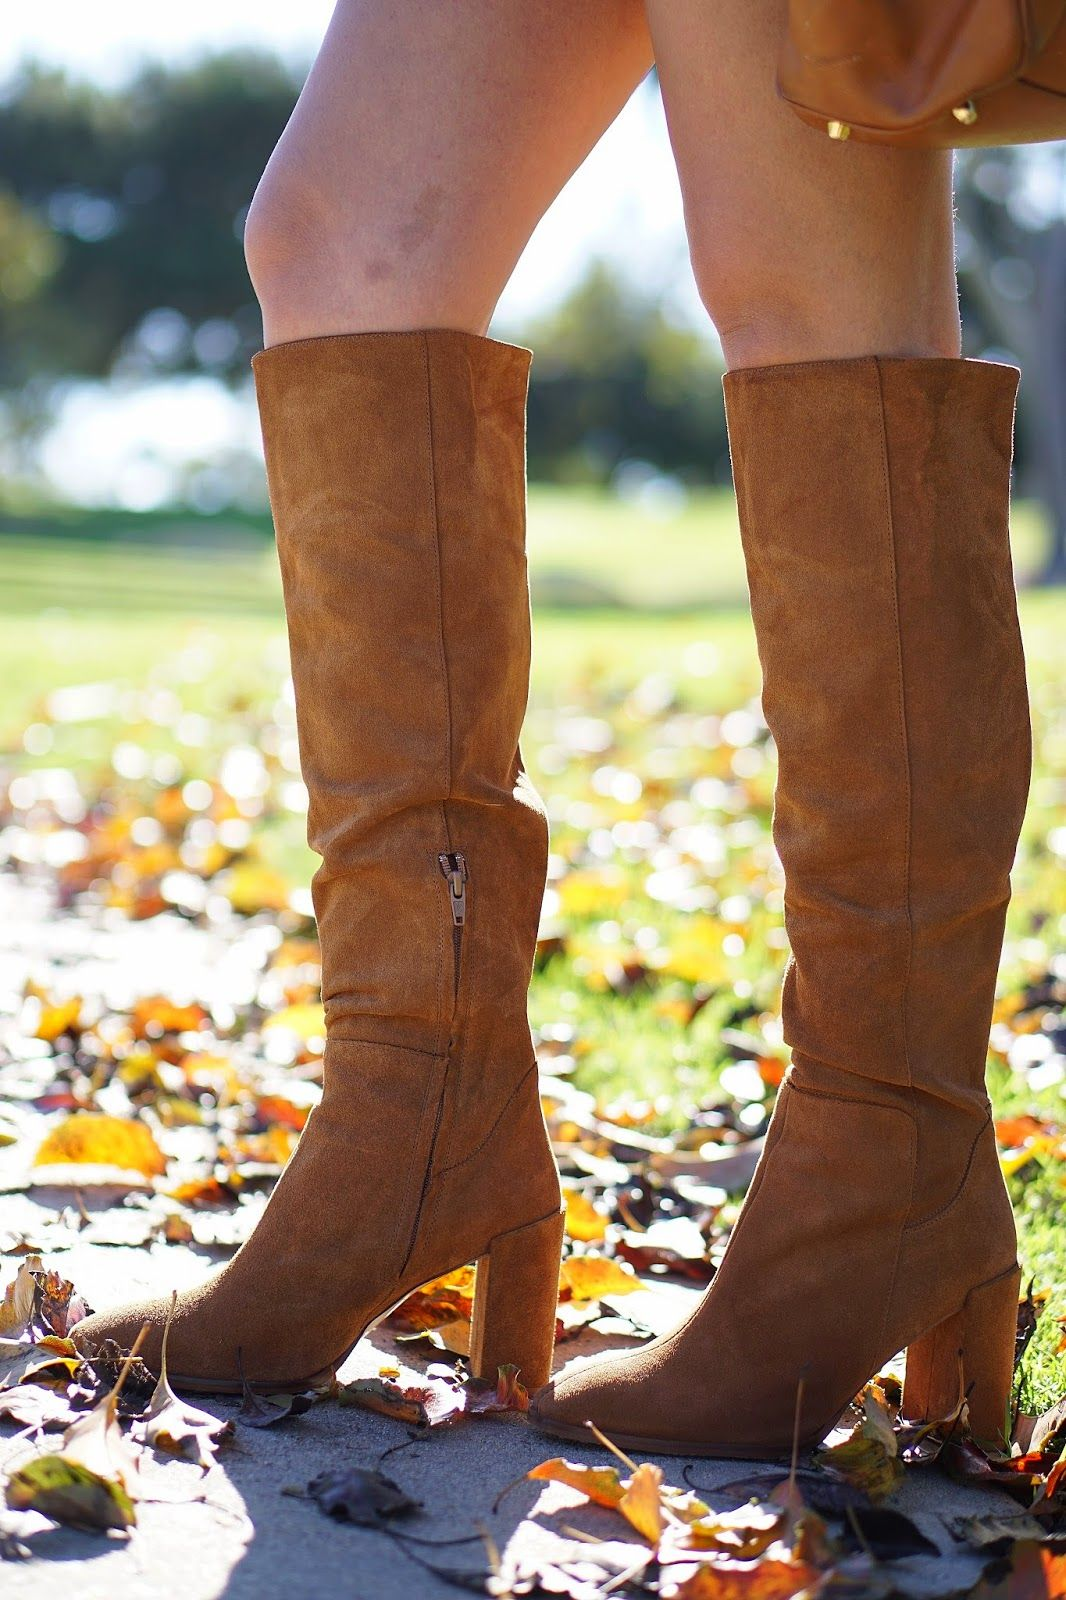 552e33fc9b4 Zara High Heeled Leather Boot, Zara Camel Colored Knee High Boot, Light  Brown Boots, How To Wear Knee High Boots With A Skirt